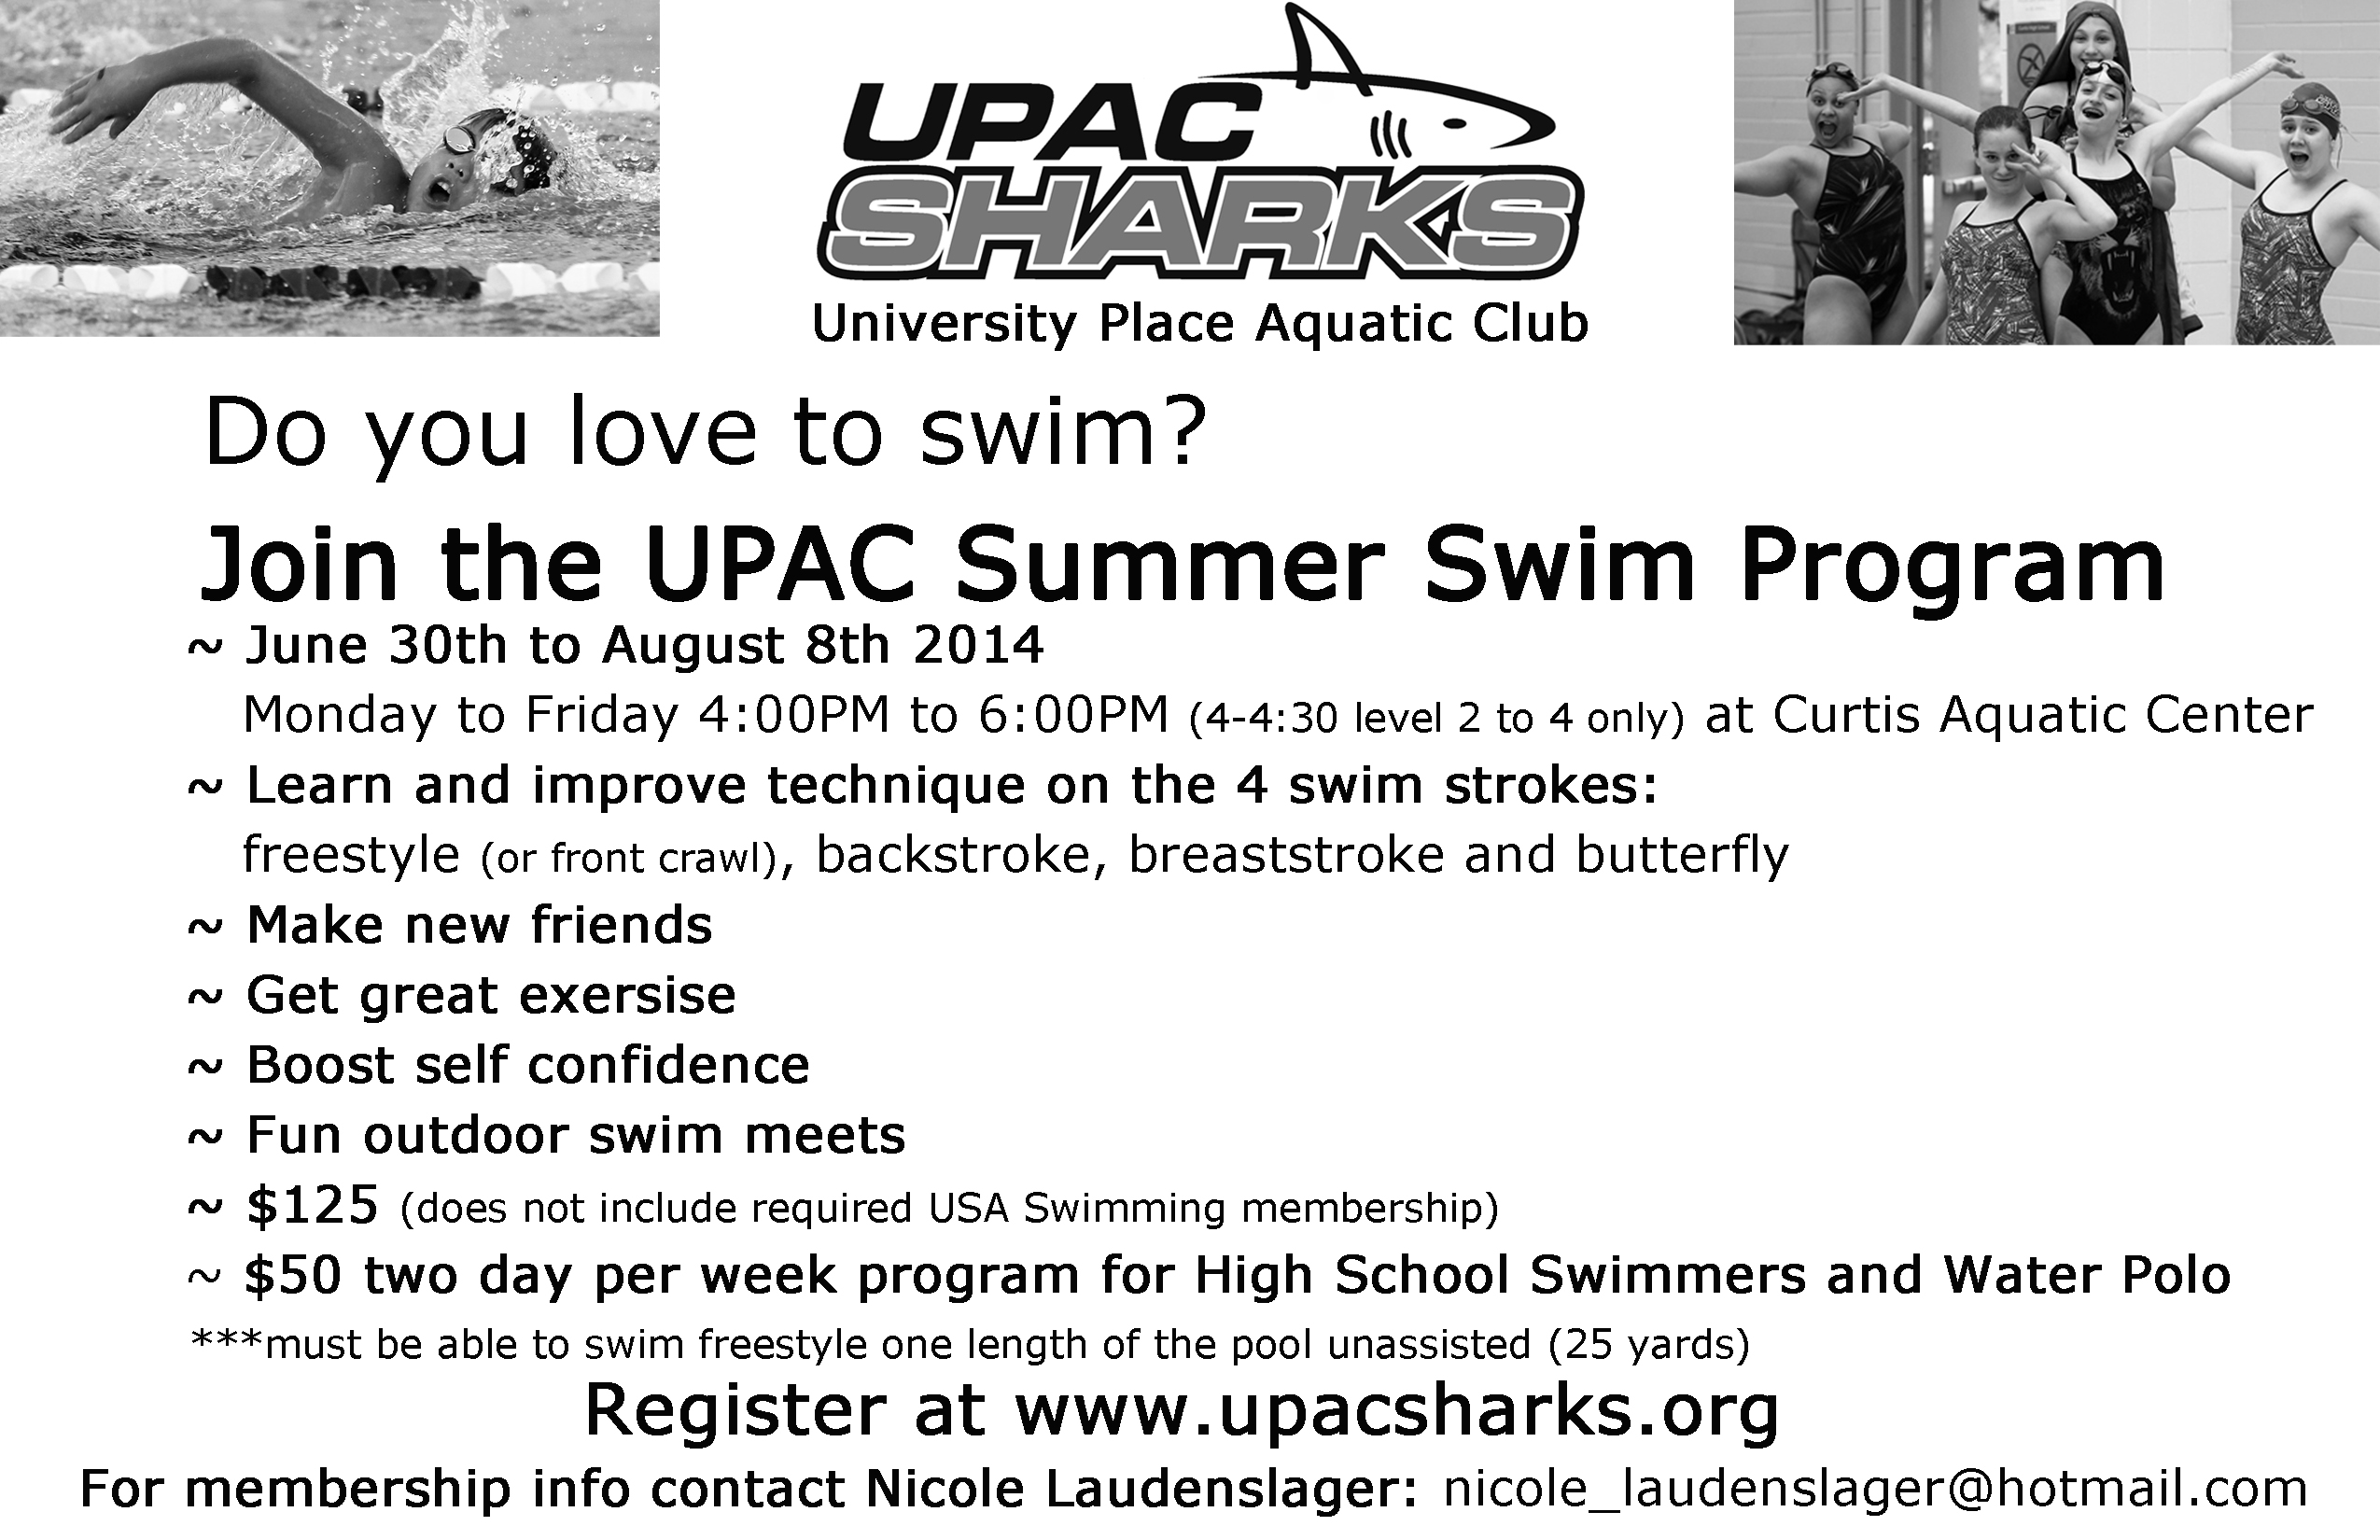 University Place Aquatic Club : Event